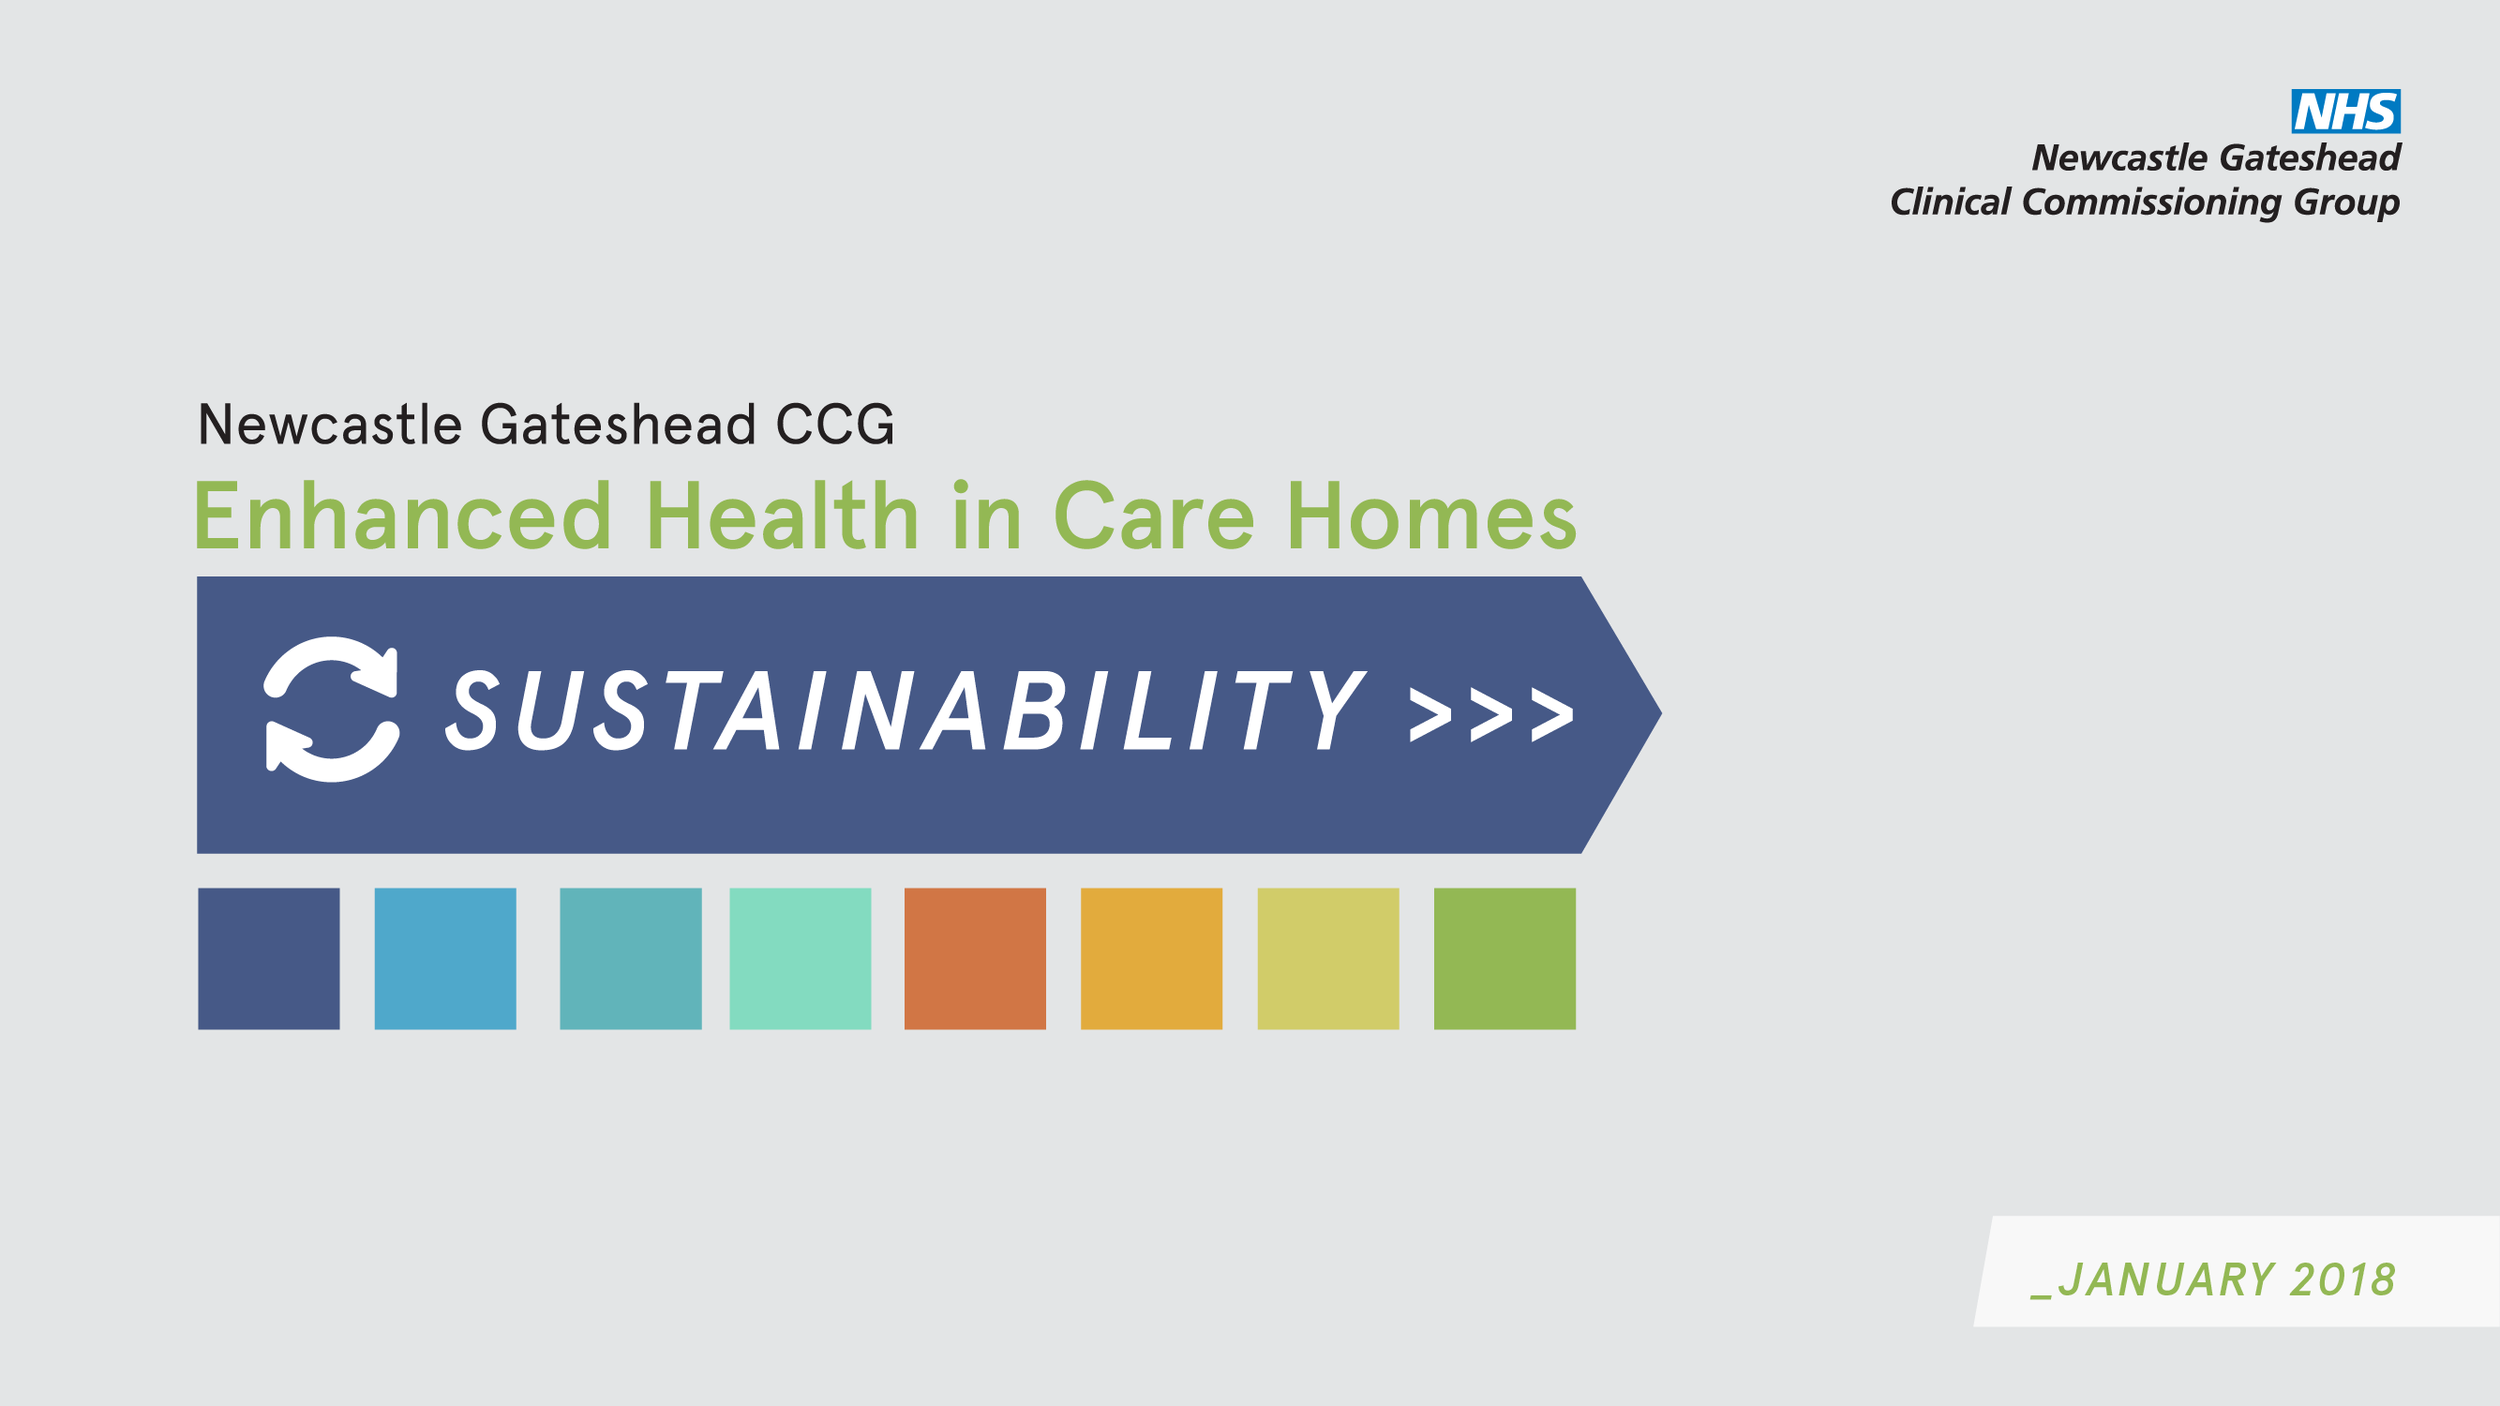 OUR SUSTAINABILITY PLAN -